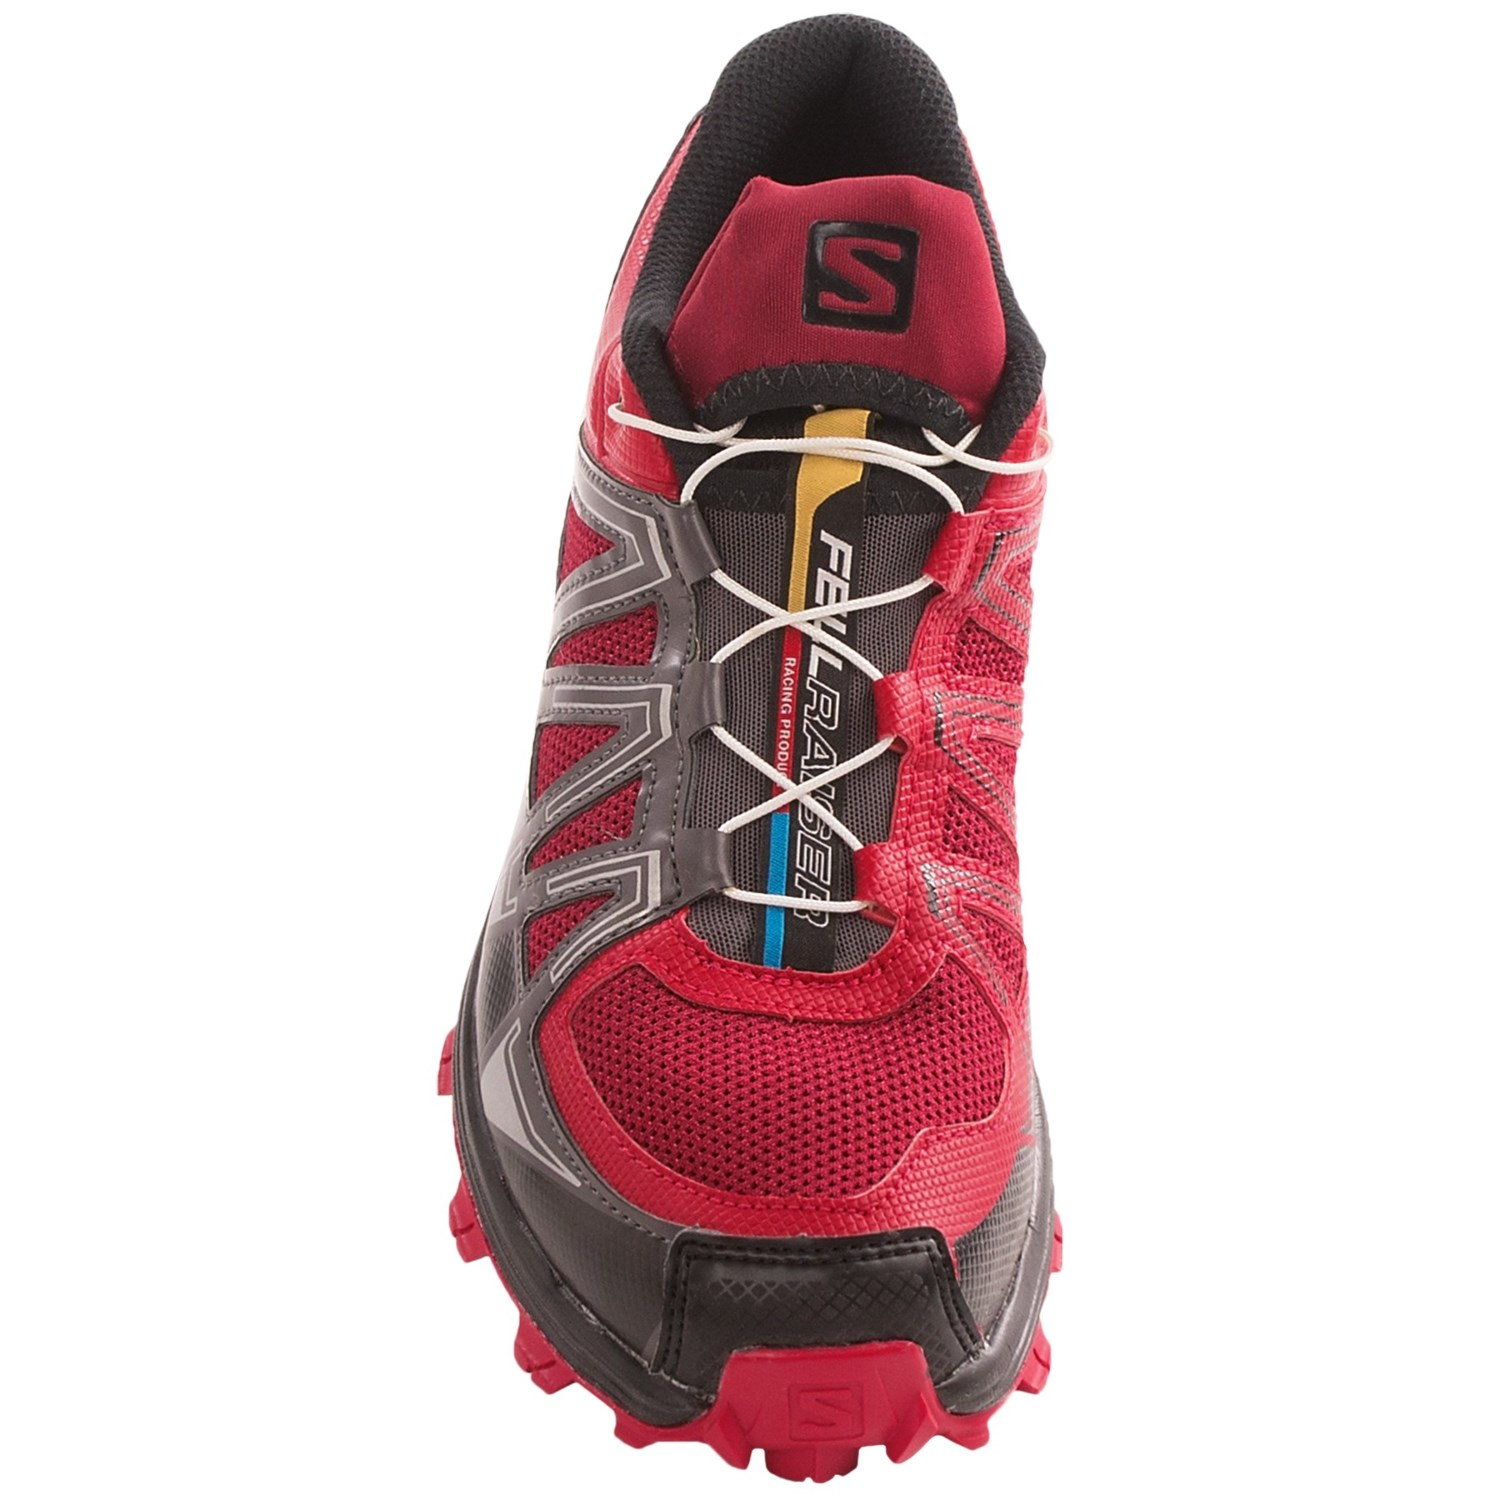 New Zealand Mens Salomon Fell Raiser - Salomon Fellraiser Trail Running Shoes For Women~p~7239c